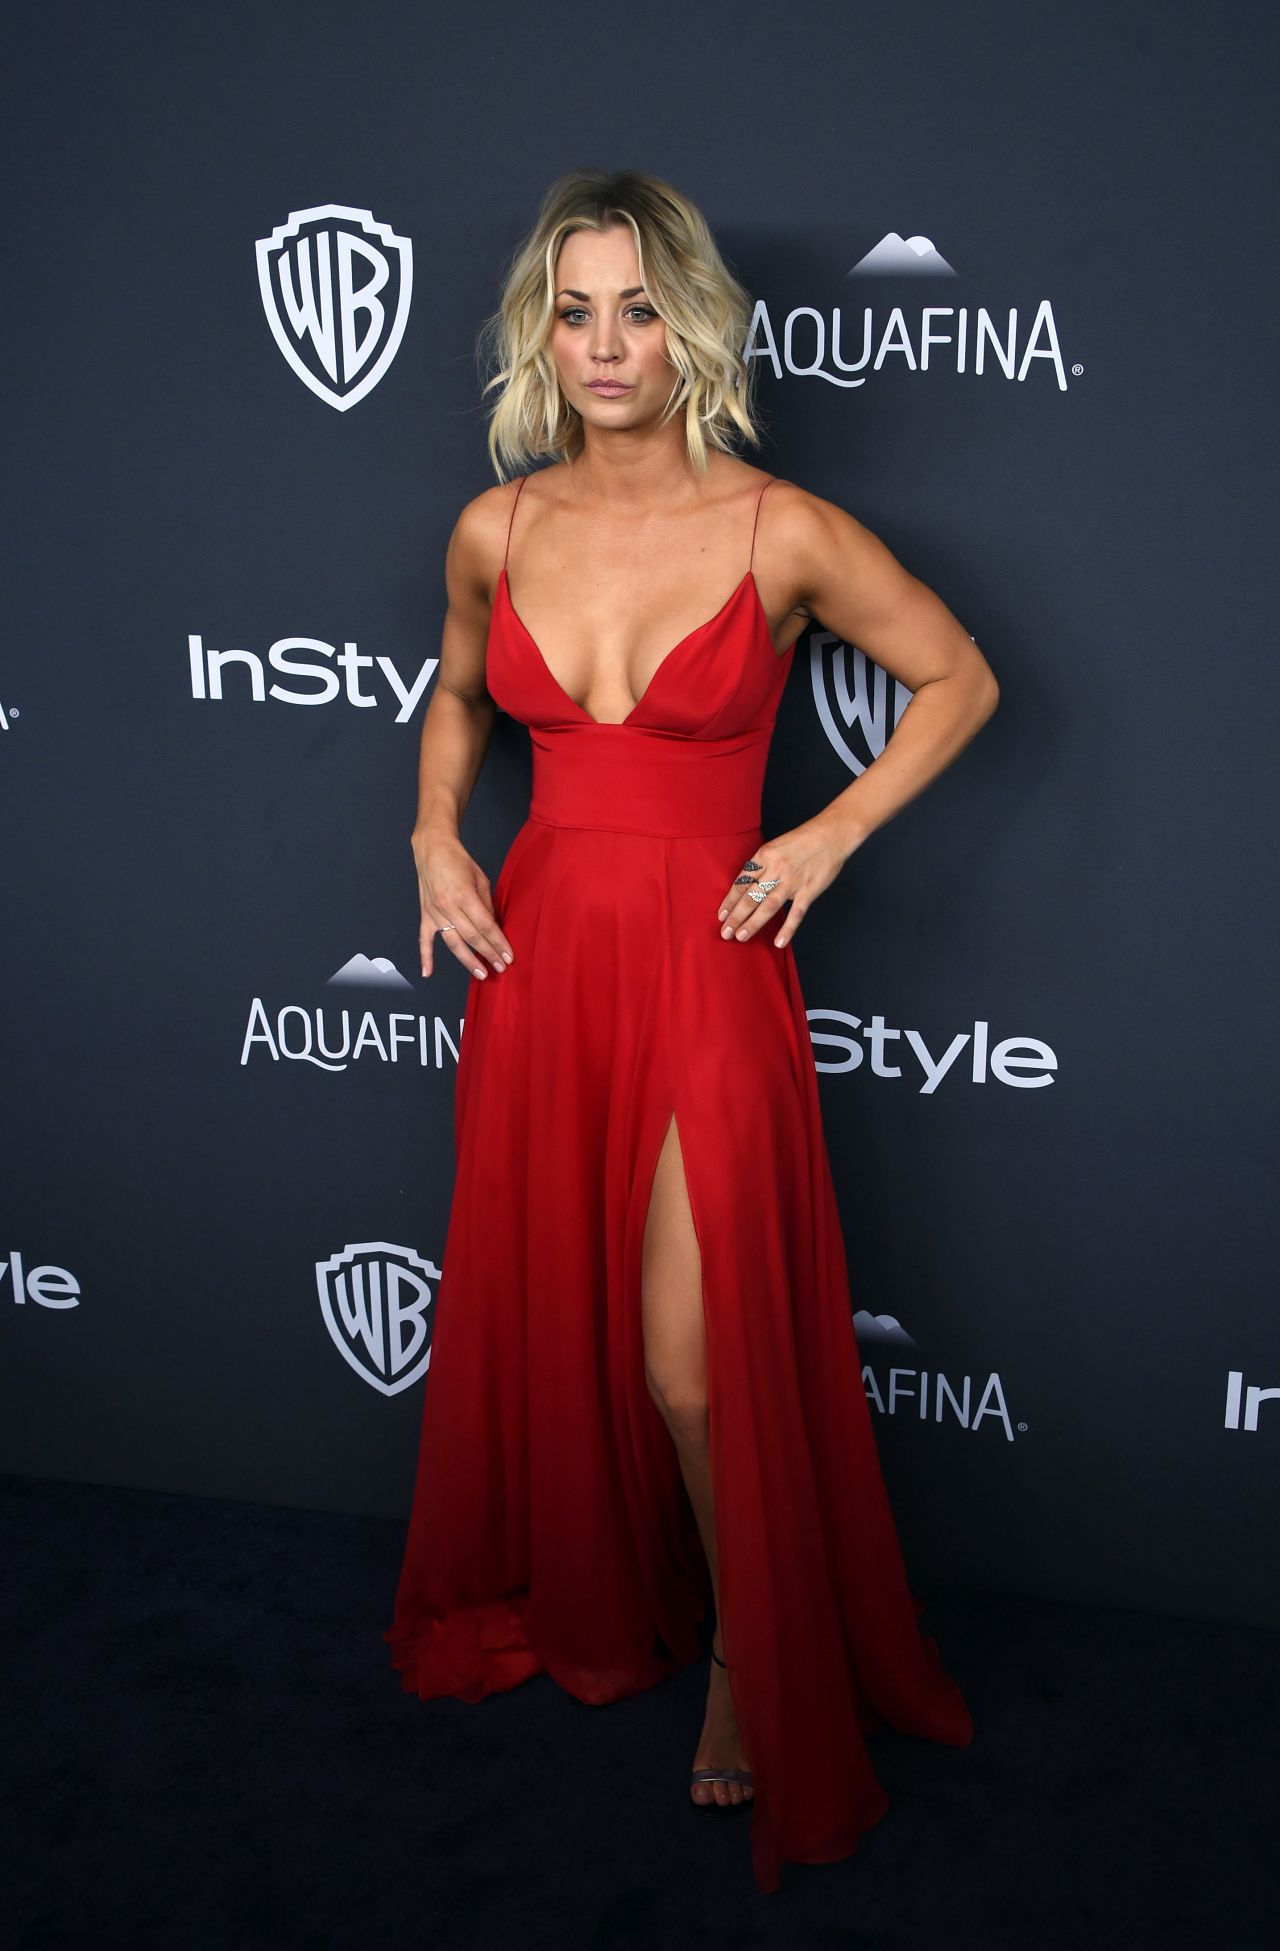 Kaley Cuoco Instyle And Warner Bros Golden Globe Awards